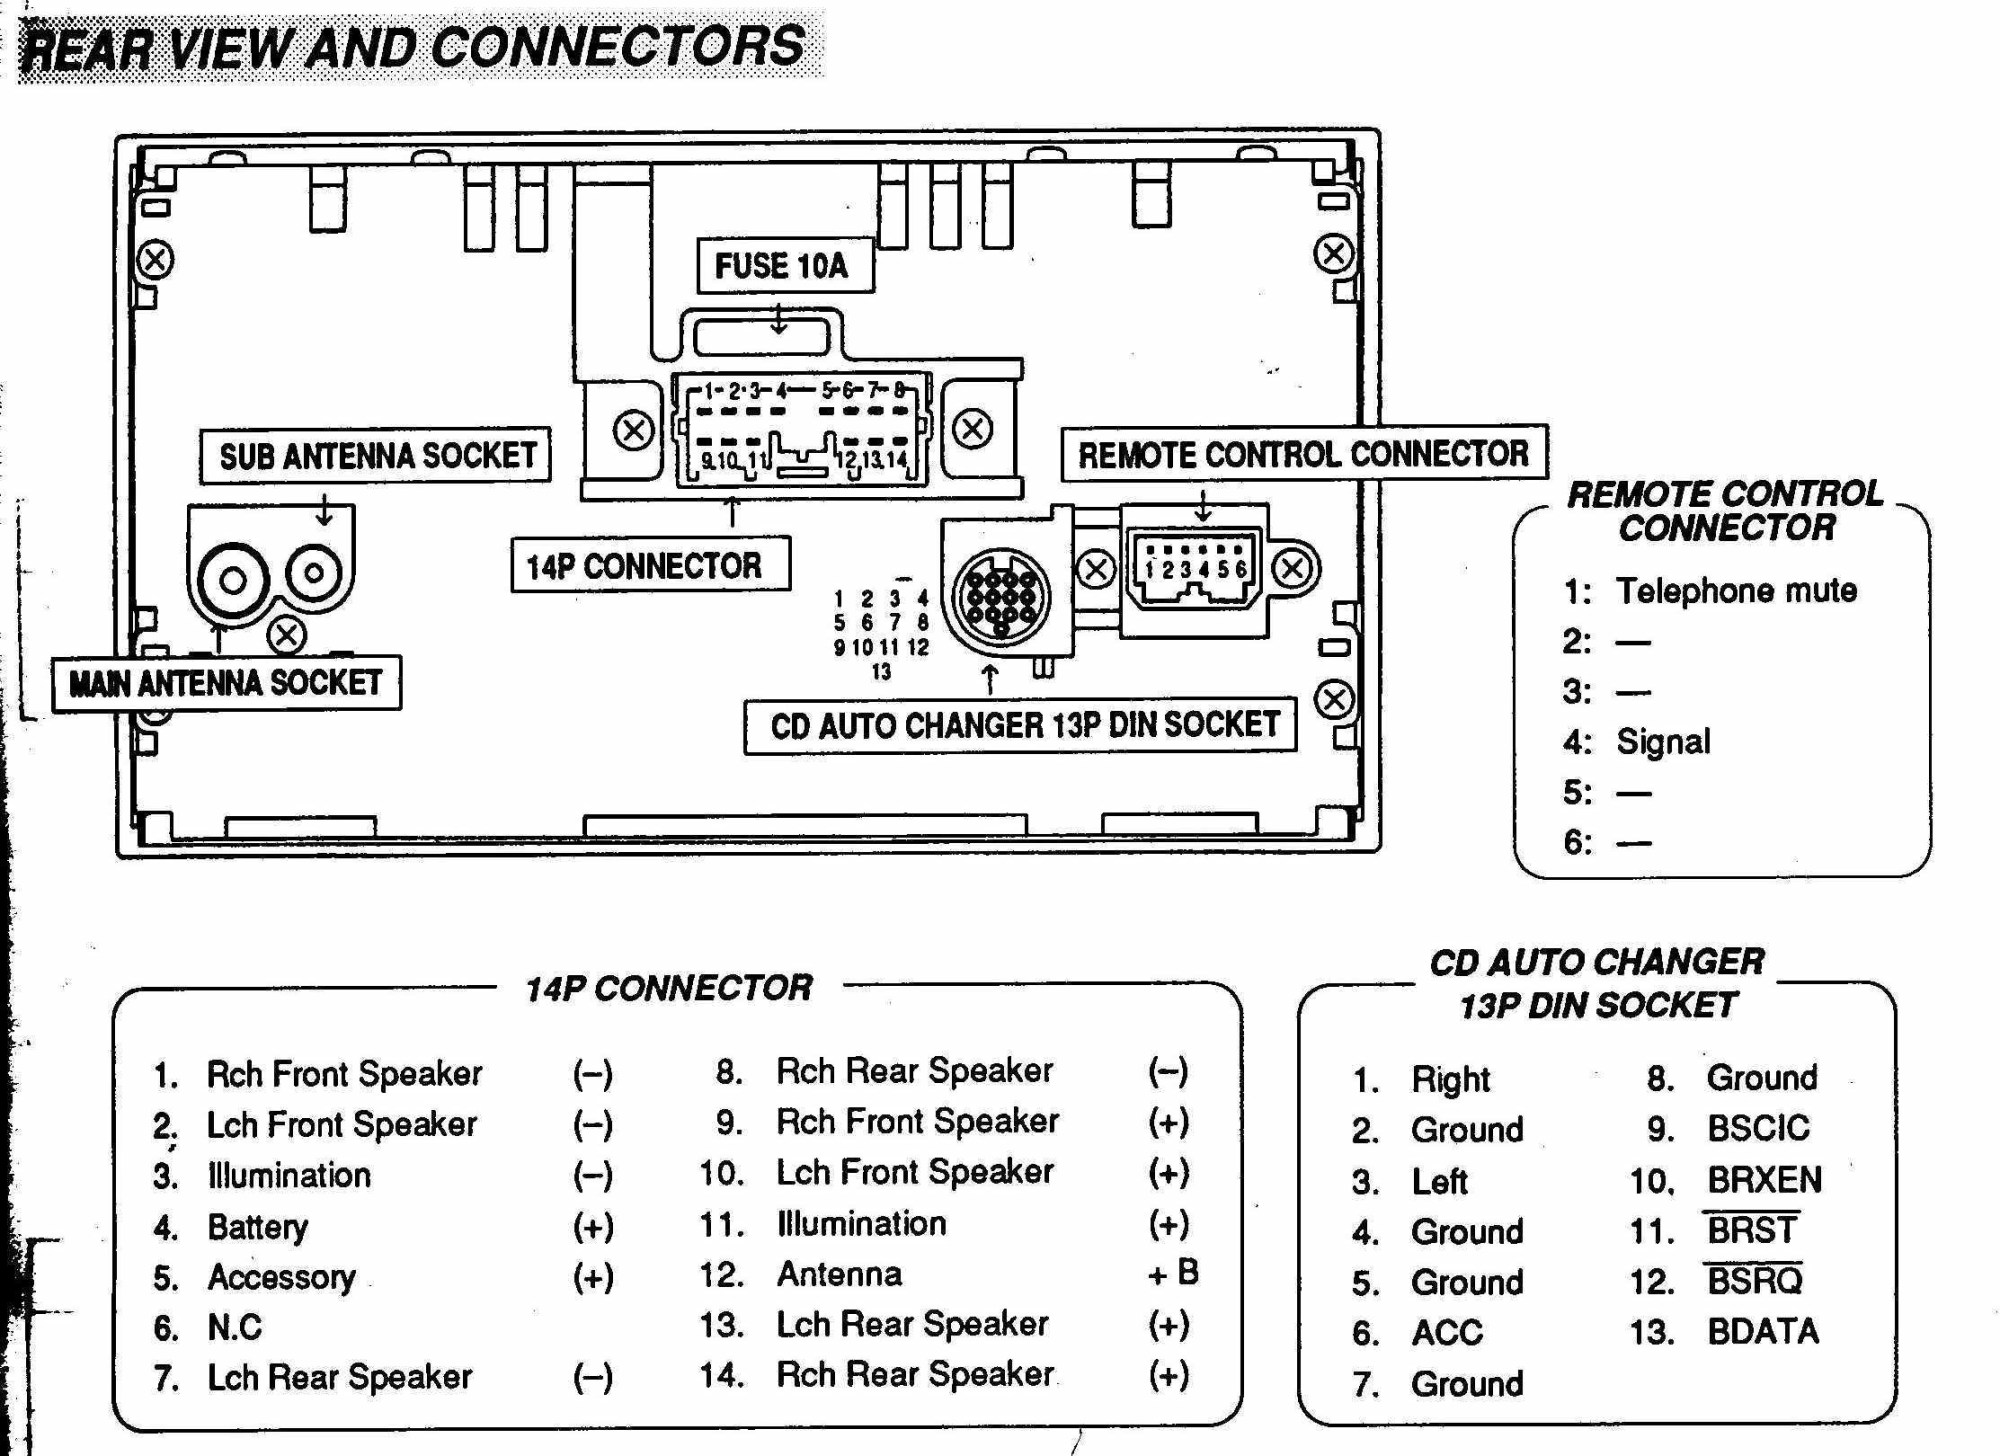 hight resolution of 2000 vw jetta stereo wiring diagram wiring diagram moreover 2001 mitsubishi eclipse radio wiring diagram of